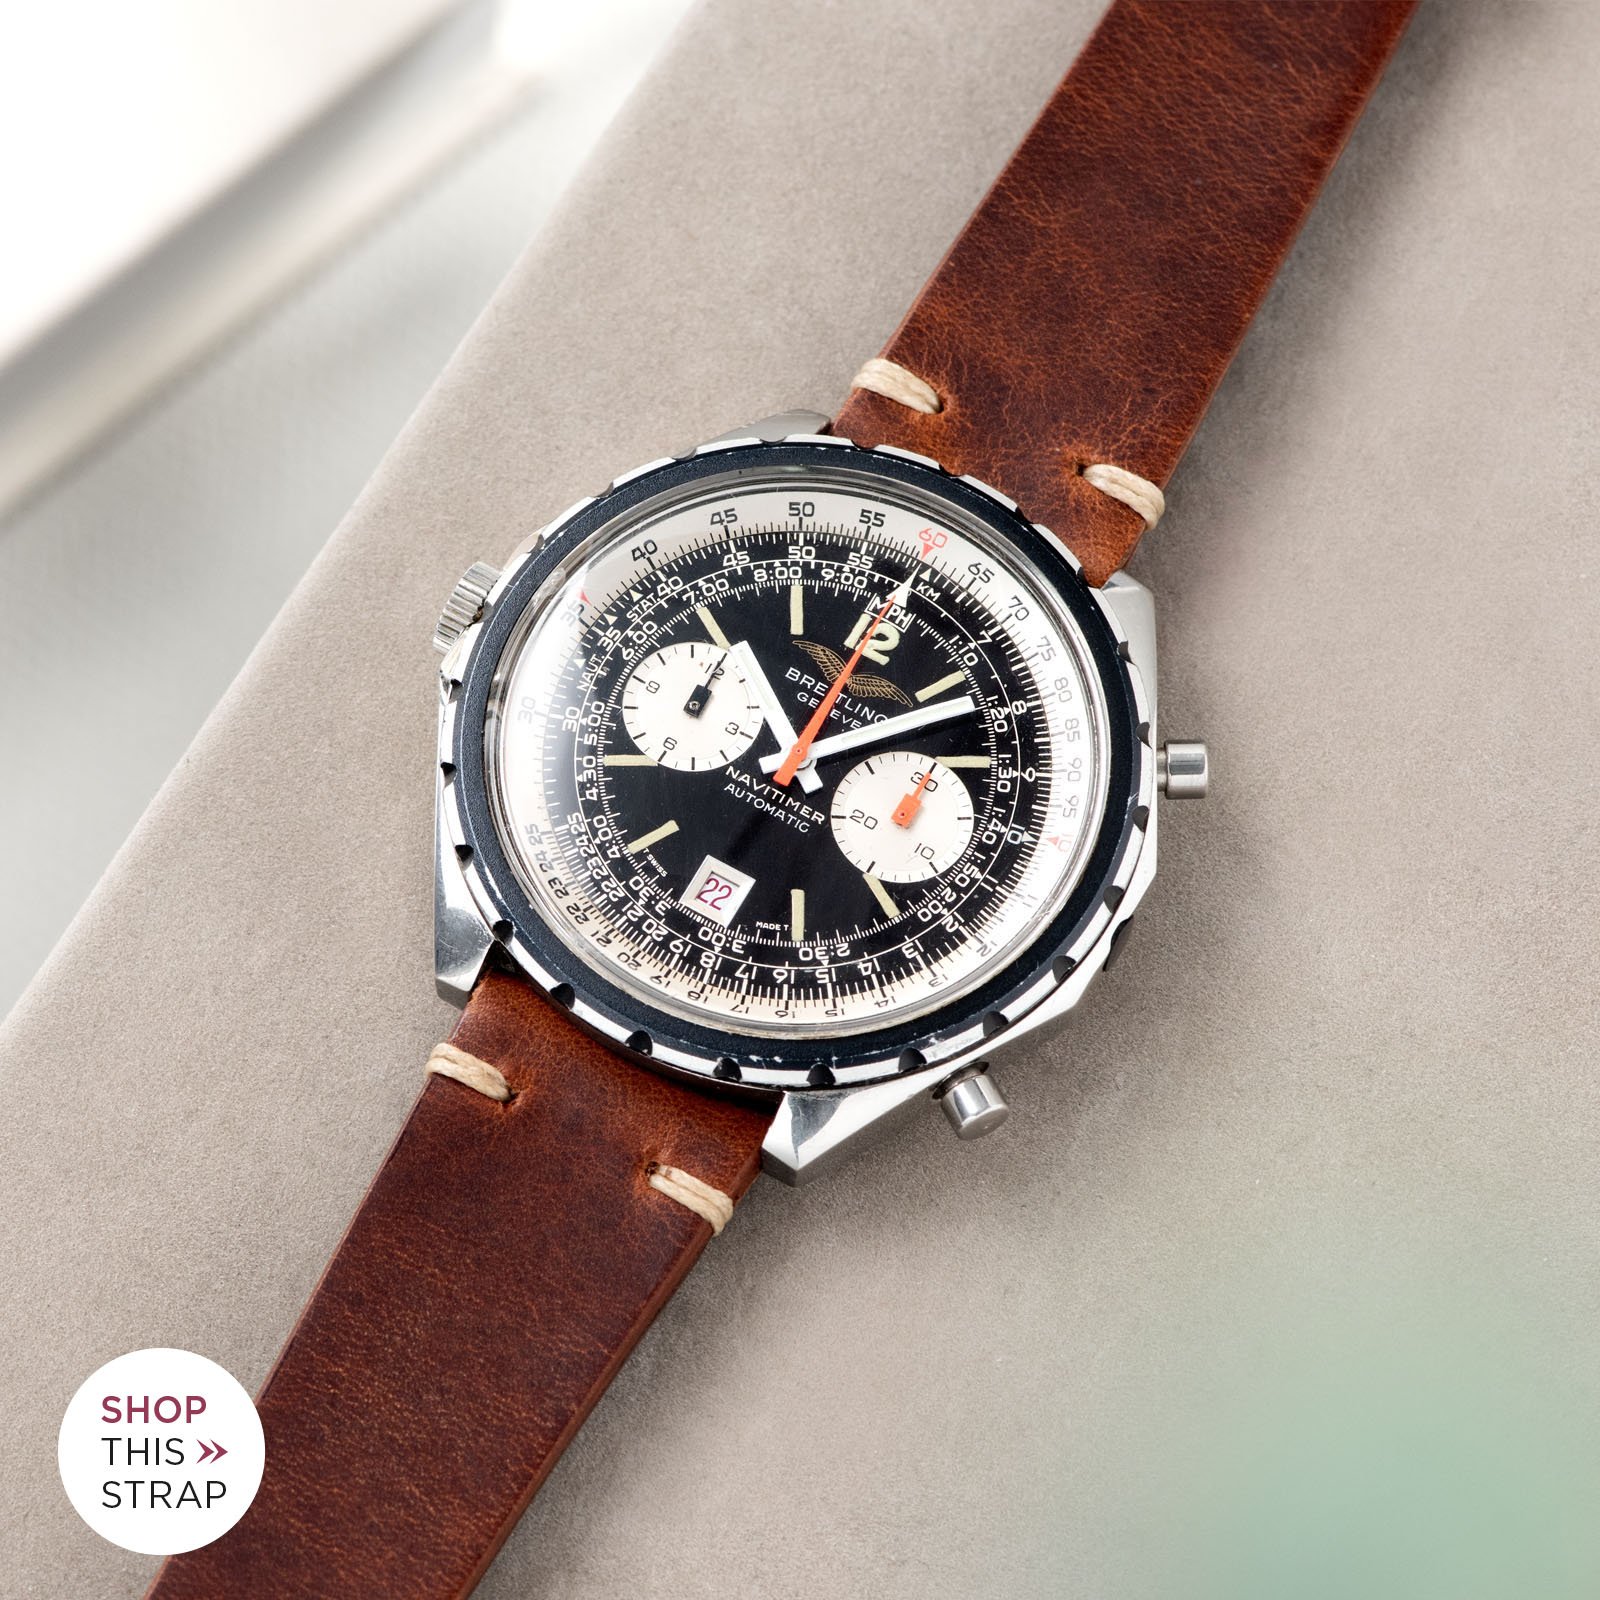 Bulang and Sons_Strapguide_Breitling Navitimer ref issued to iraqi air force ref 1806_Siena Brown Leather Watch Strap _005